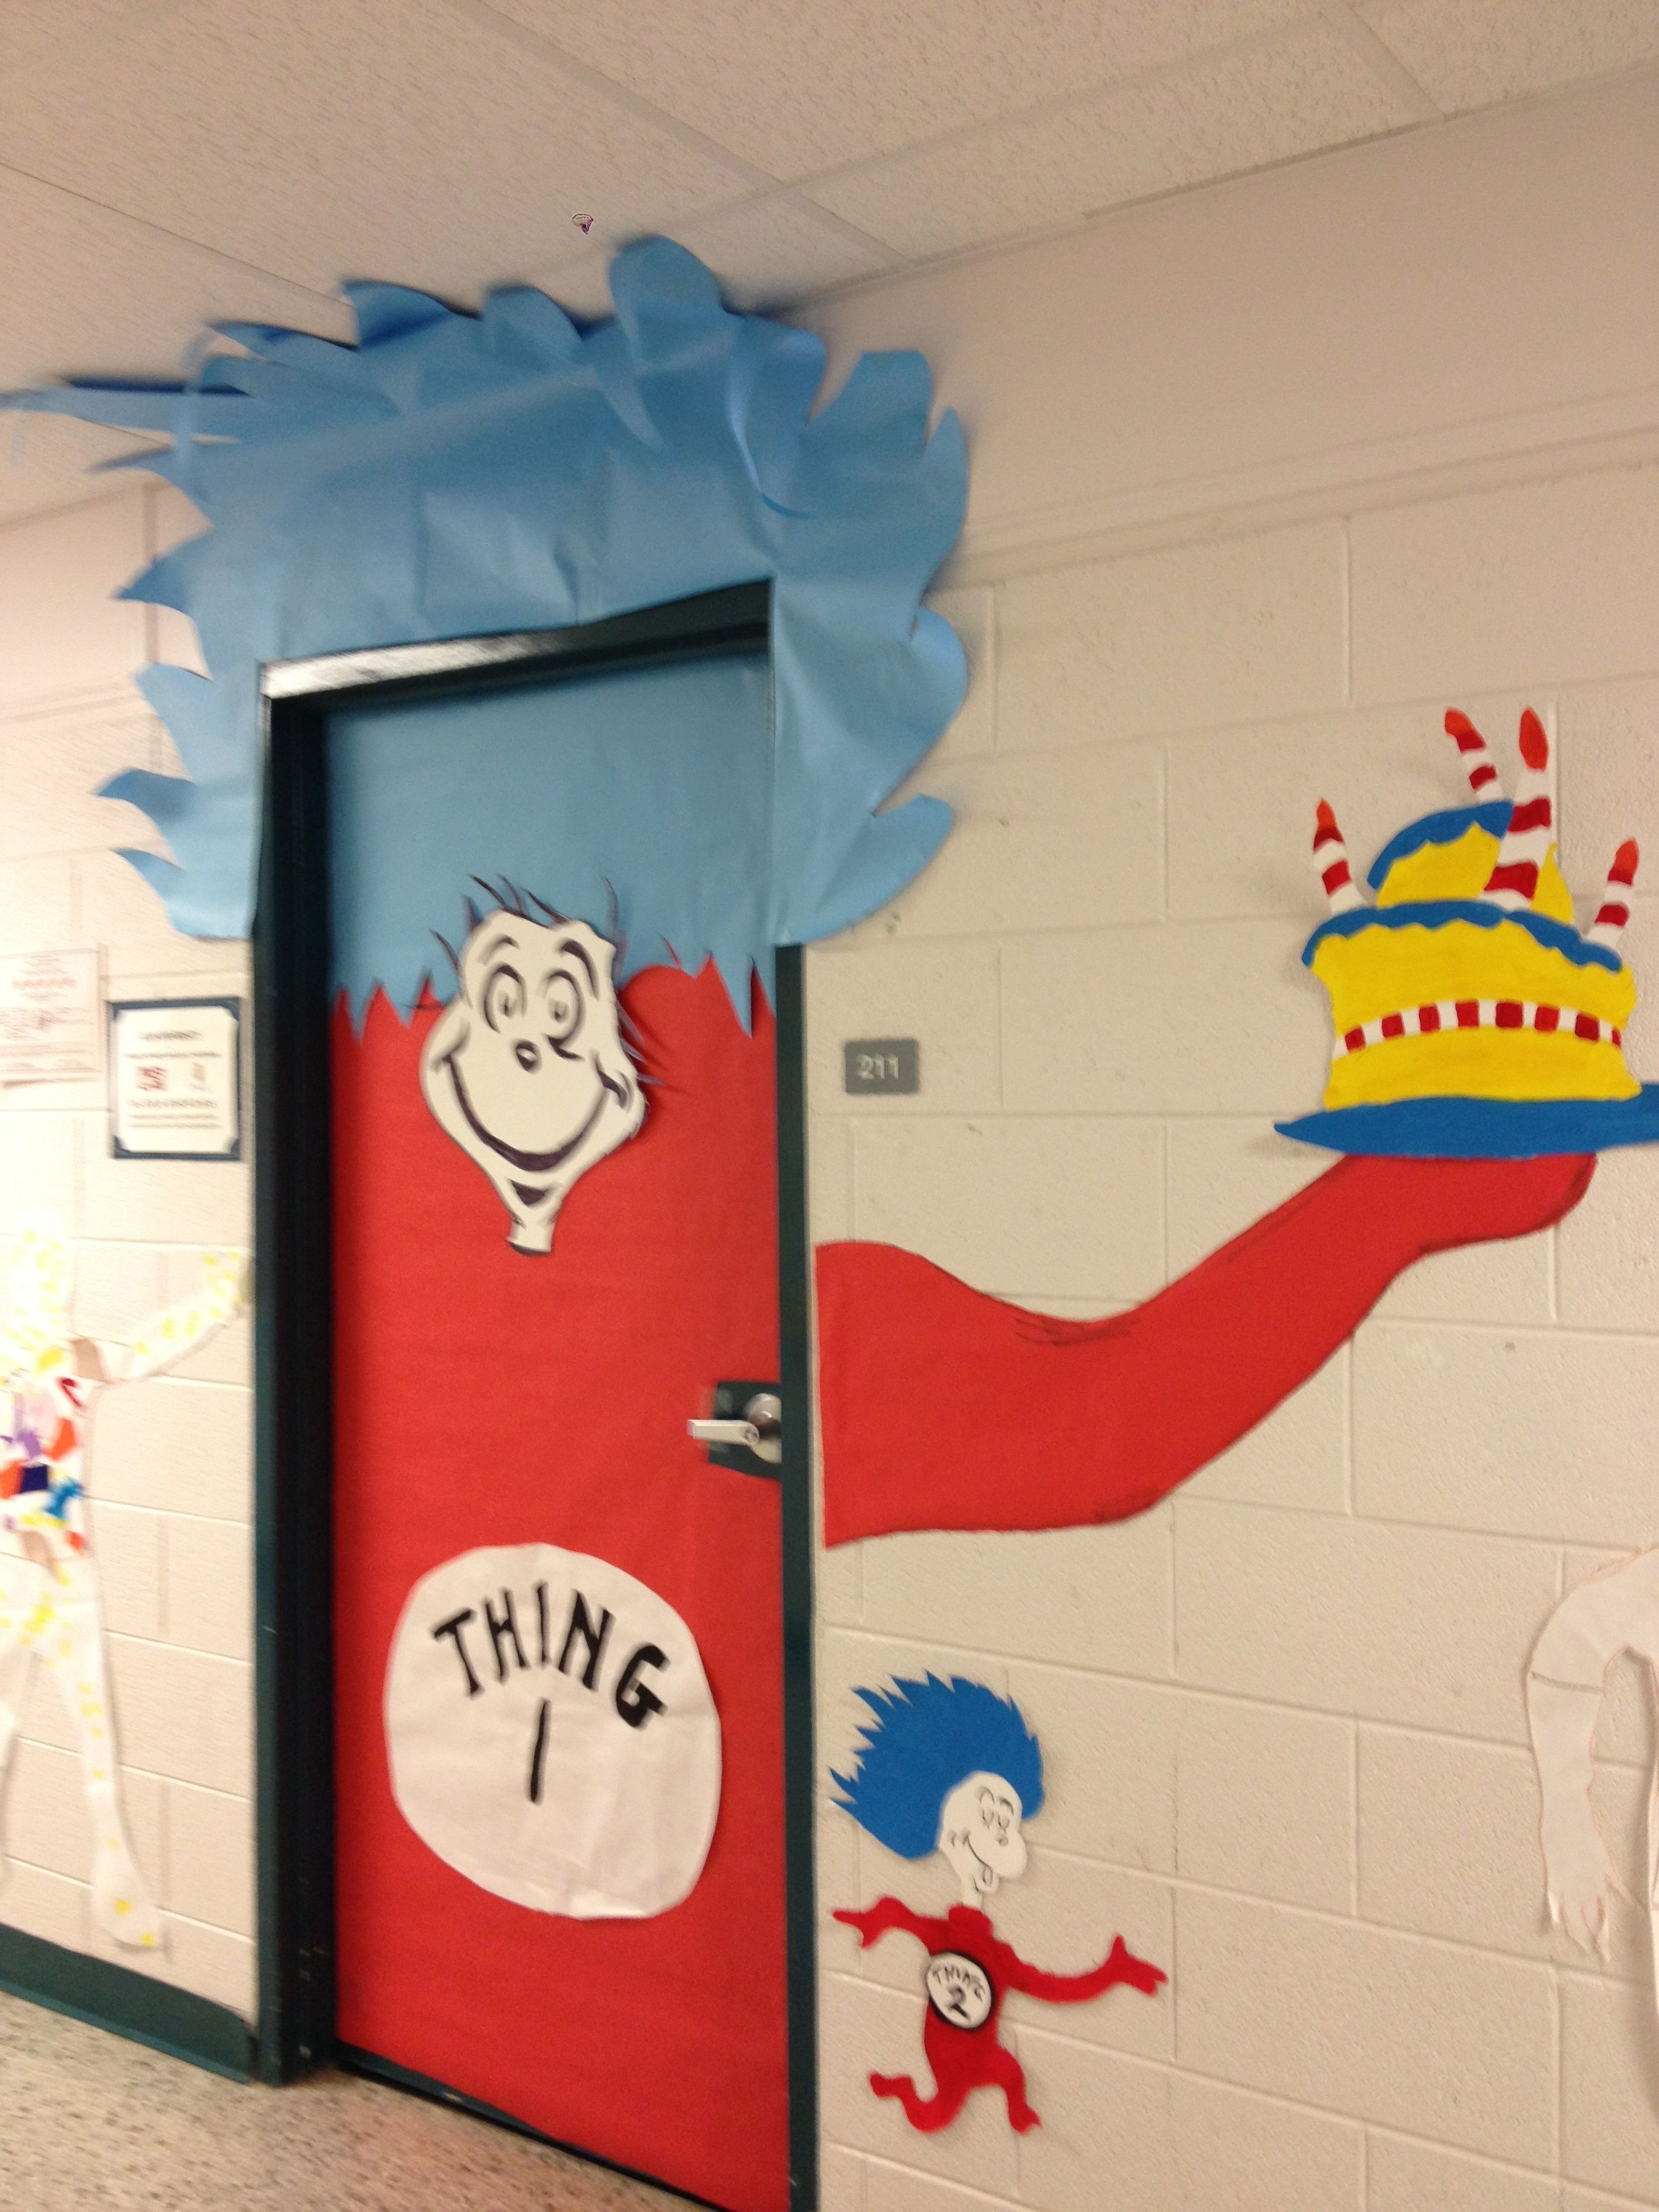 To celebrate this amazing author, we decorated our classroom door, Dr. Seuss  style